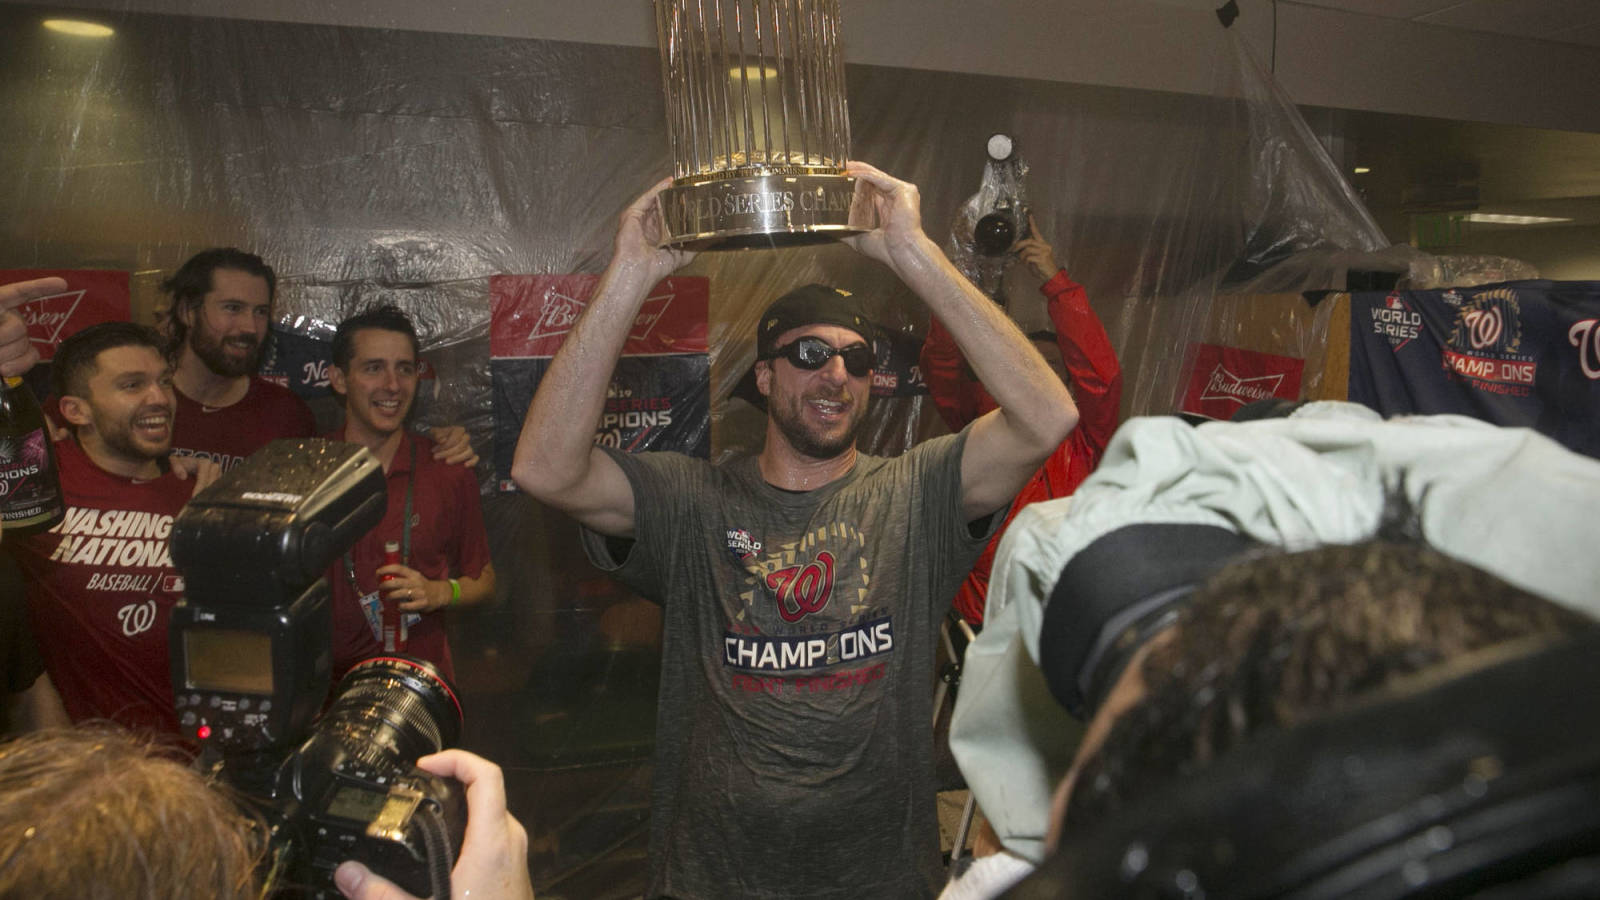 Mlb Banning Alcohol From Locker Room Celebrations This Season Yardbarker